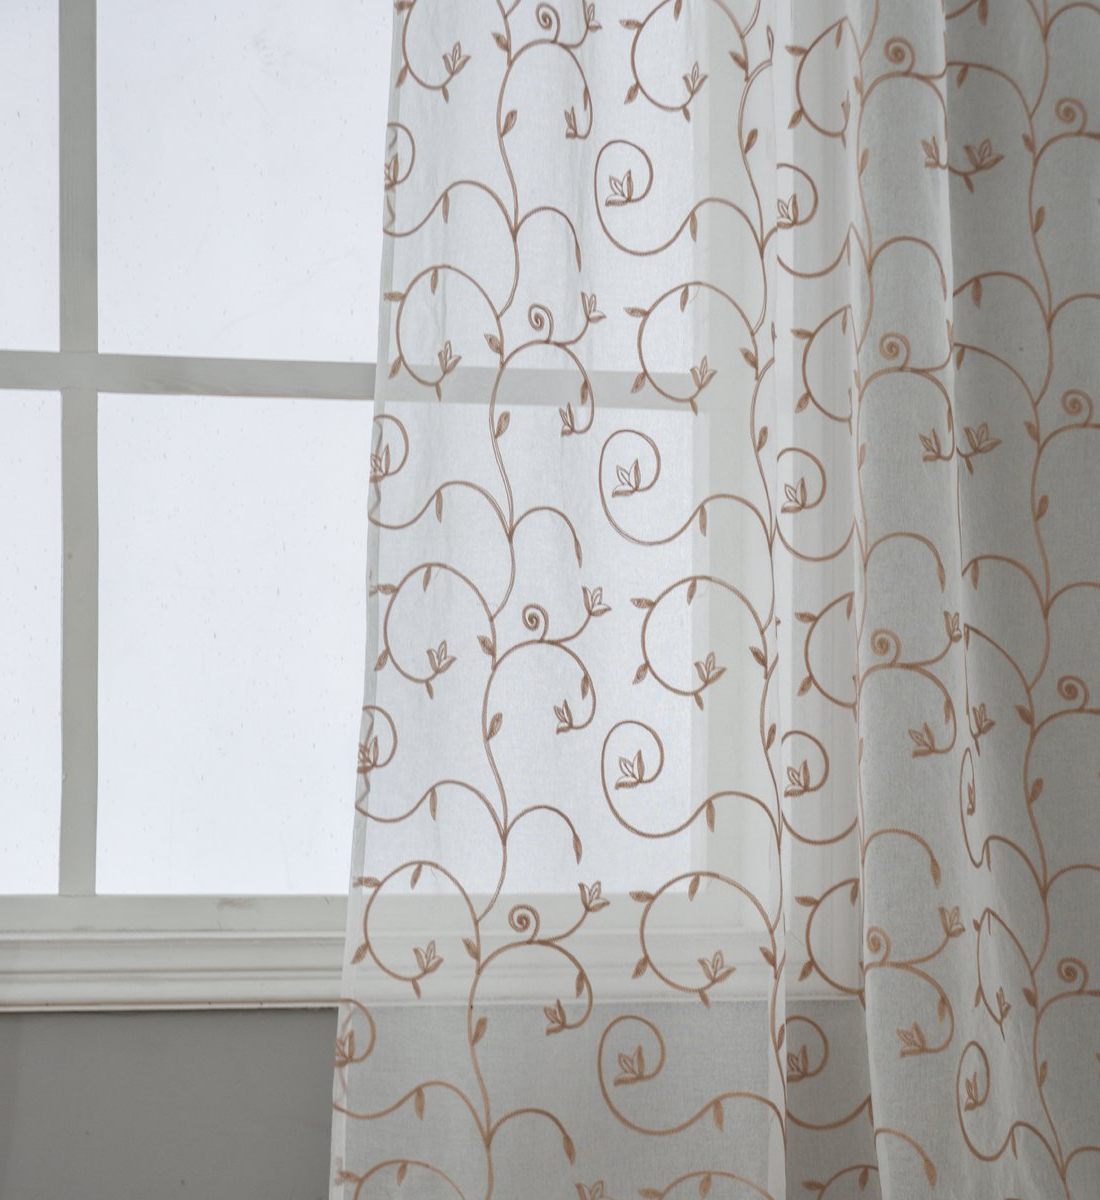 Current Overseas Leaf Swirl Embroidered Curtain Panel Pairs In Kotile Sheer Curtains For Living Room Curtain, Floral Embroidered 2 Panels  Grommet Light Filtering Window Curtains For Sliding Glass Door Curtains,  (View 5 of 21)